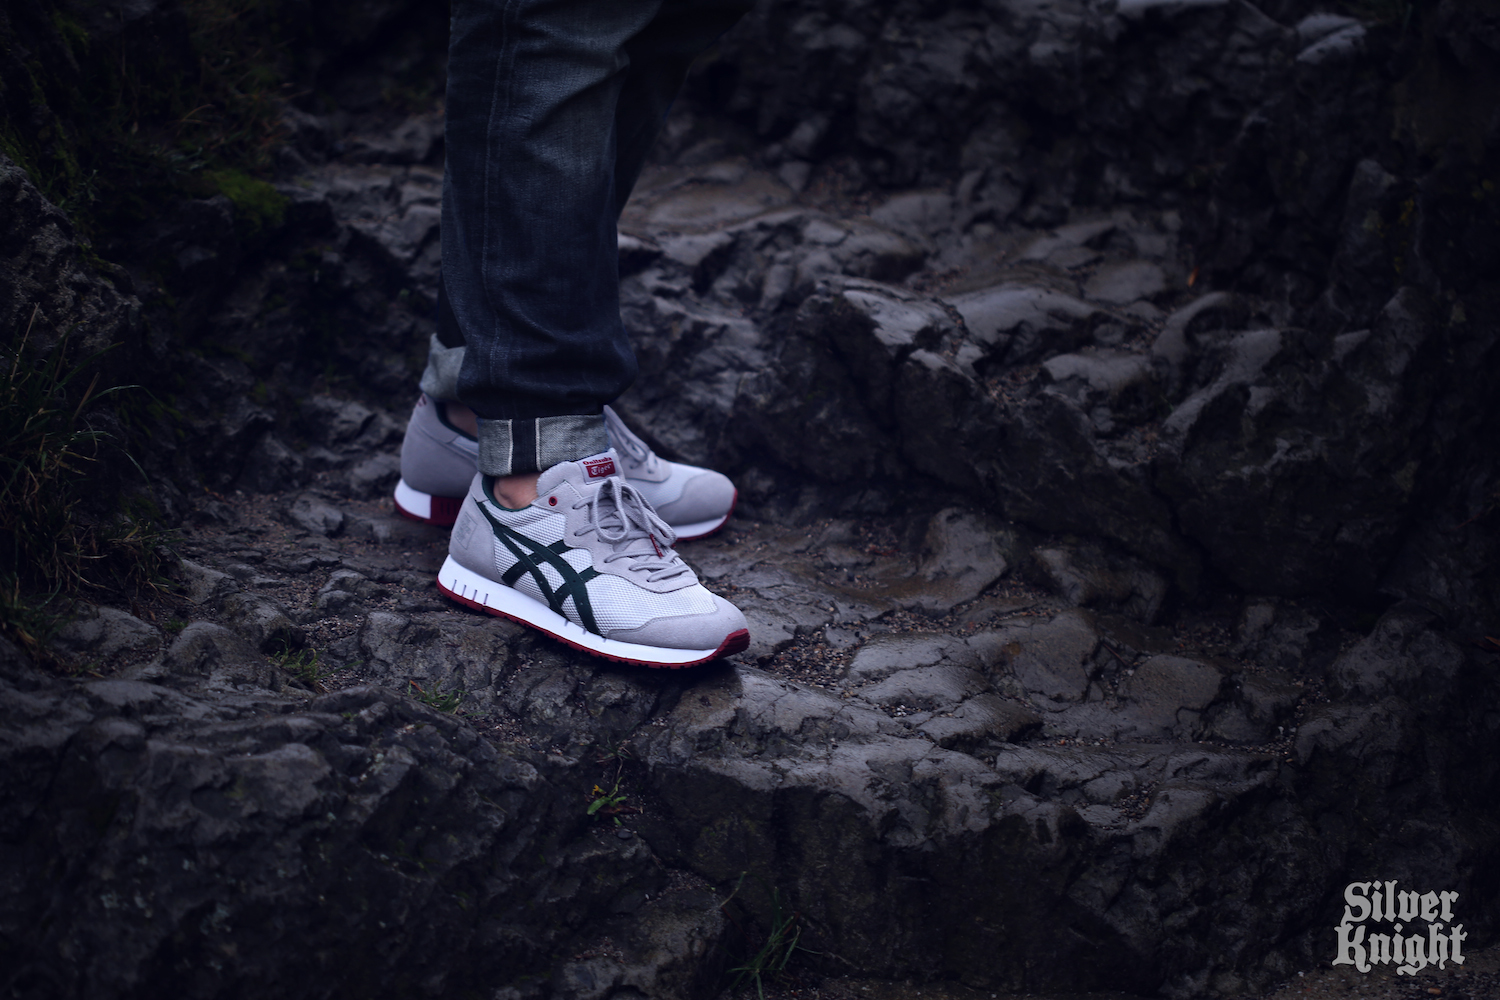 The Good Will Out x Onitsuka Tiger X-Caliber Silver Knight on foot